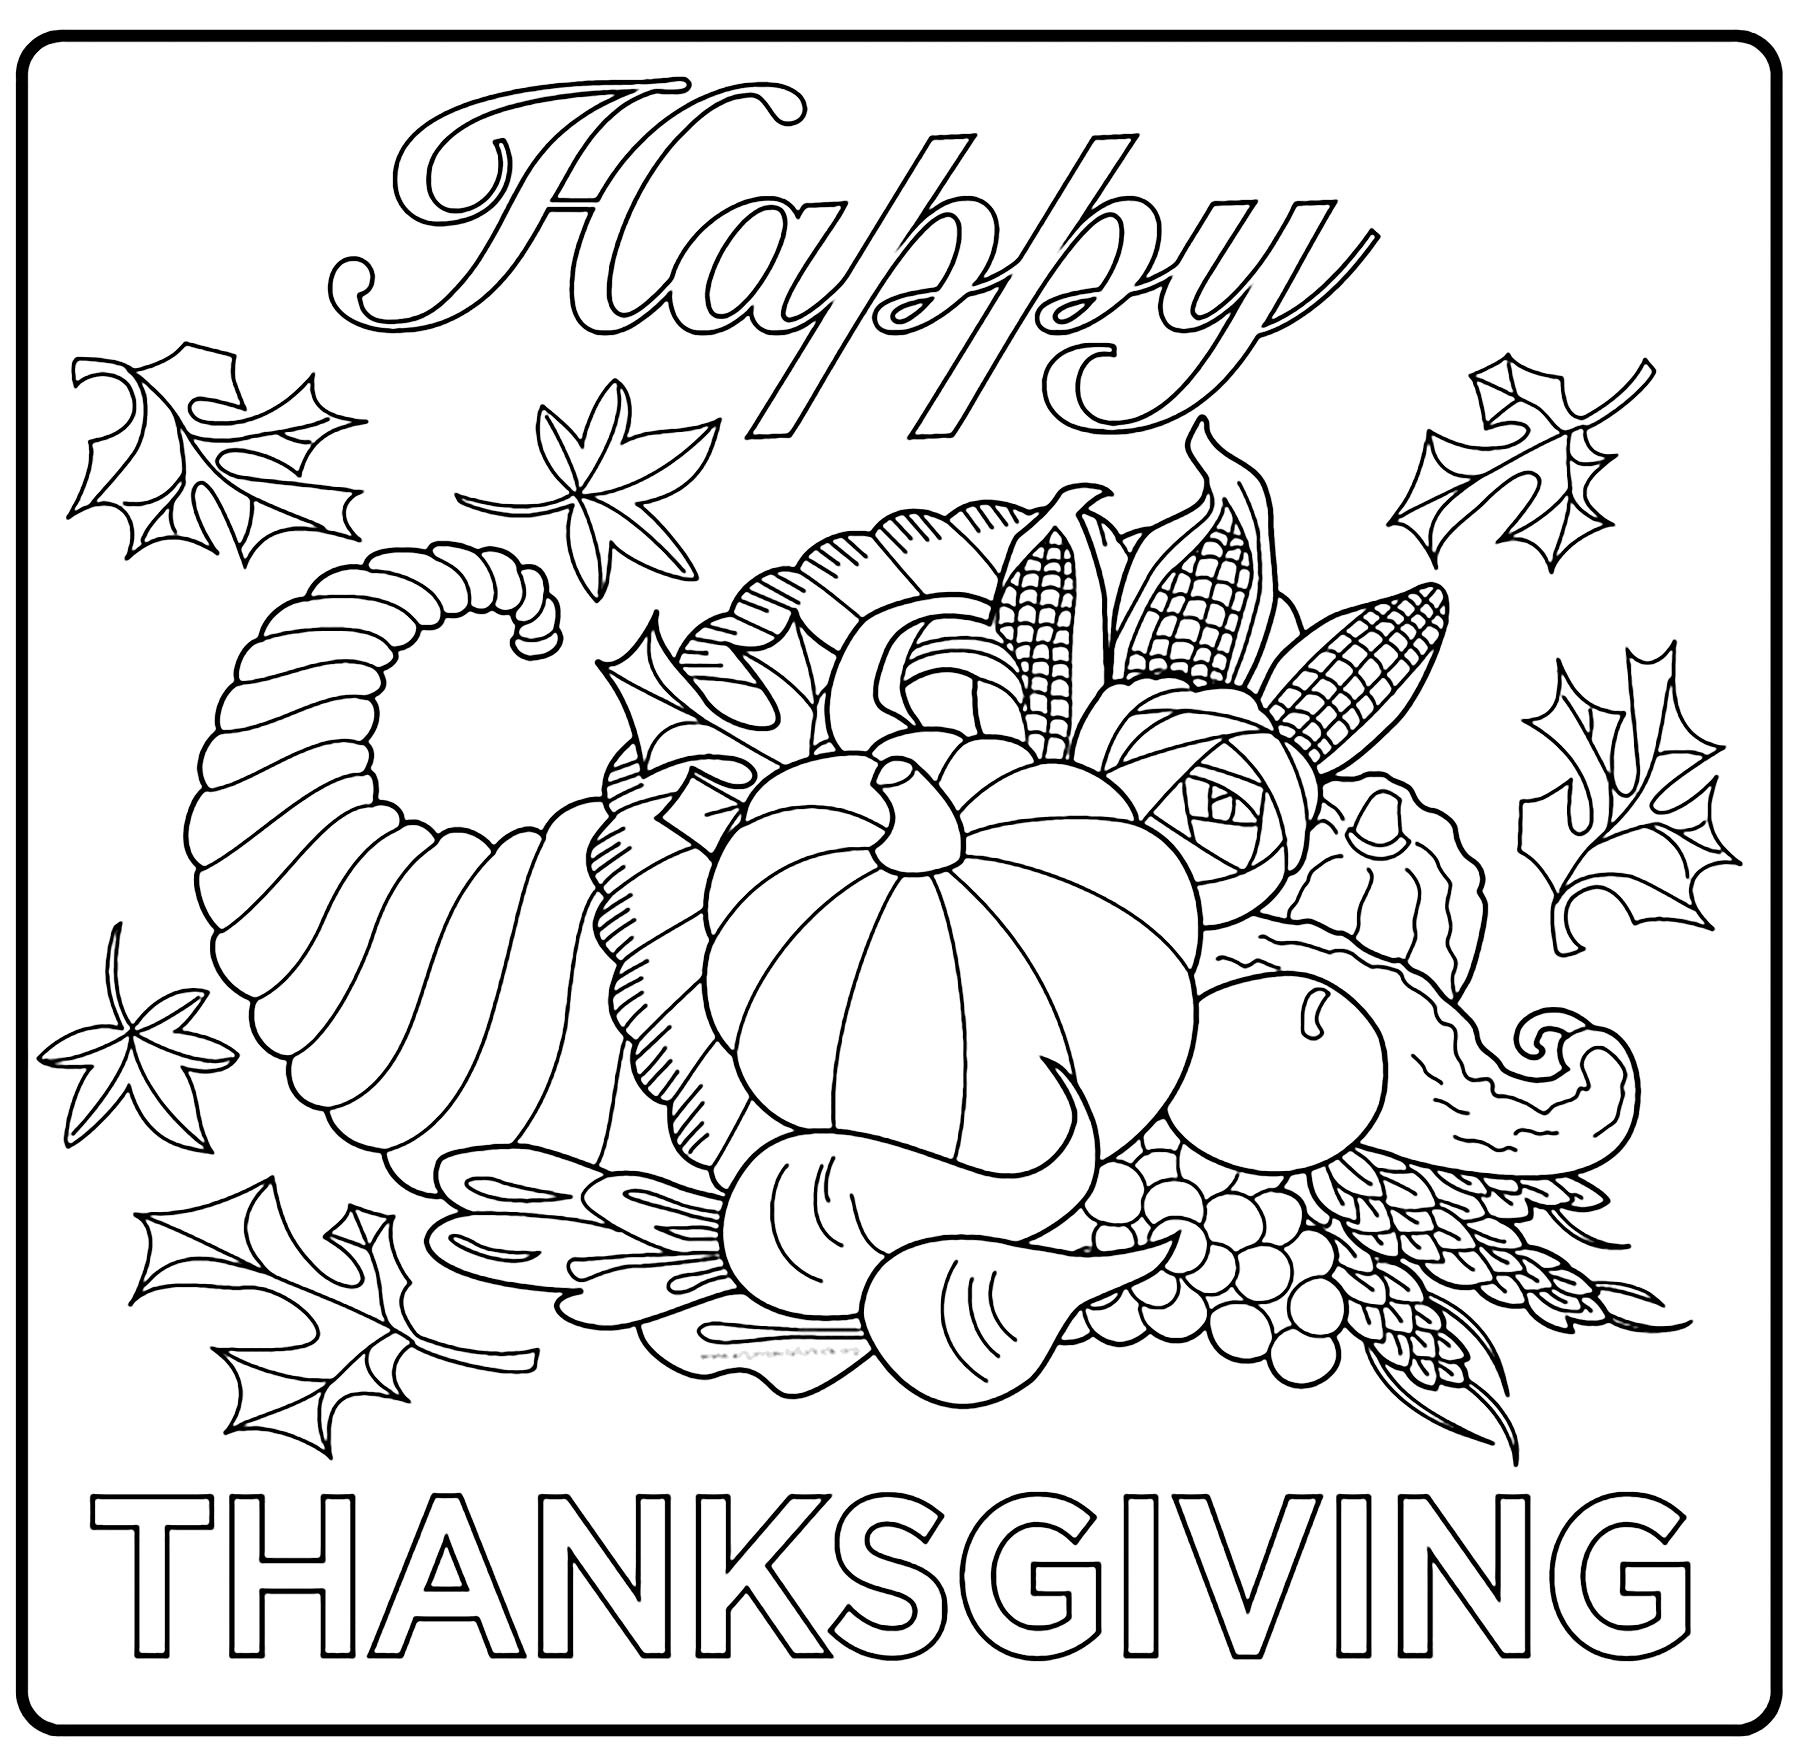 Thanksgiving Coloring Pages For Children  Thanksgiving free to color for children Thanksgiving